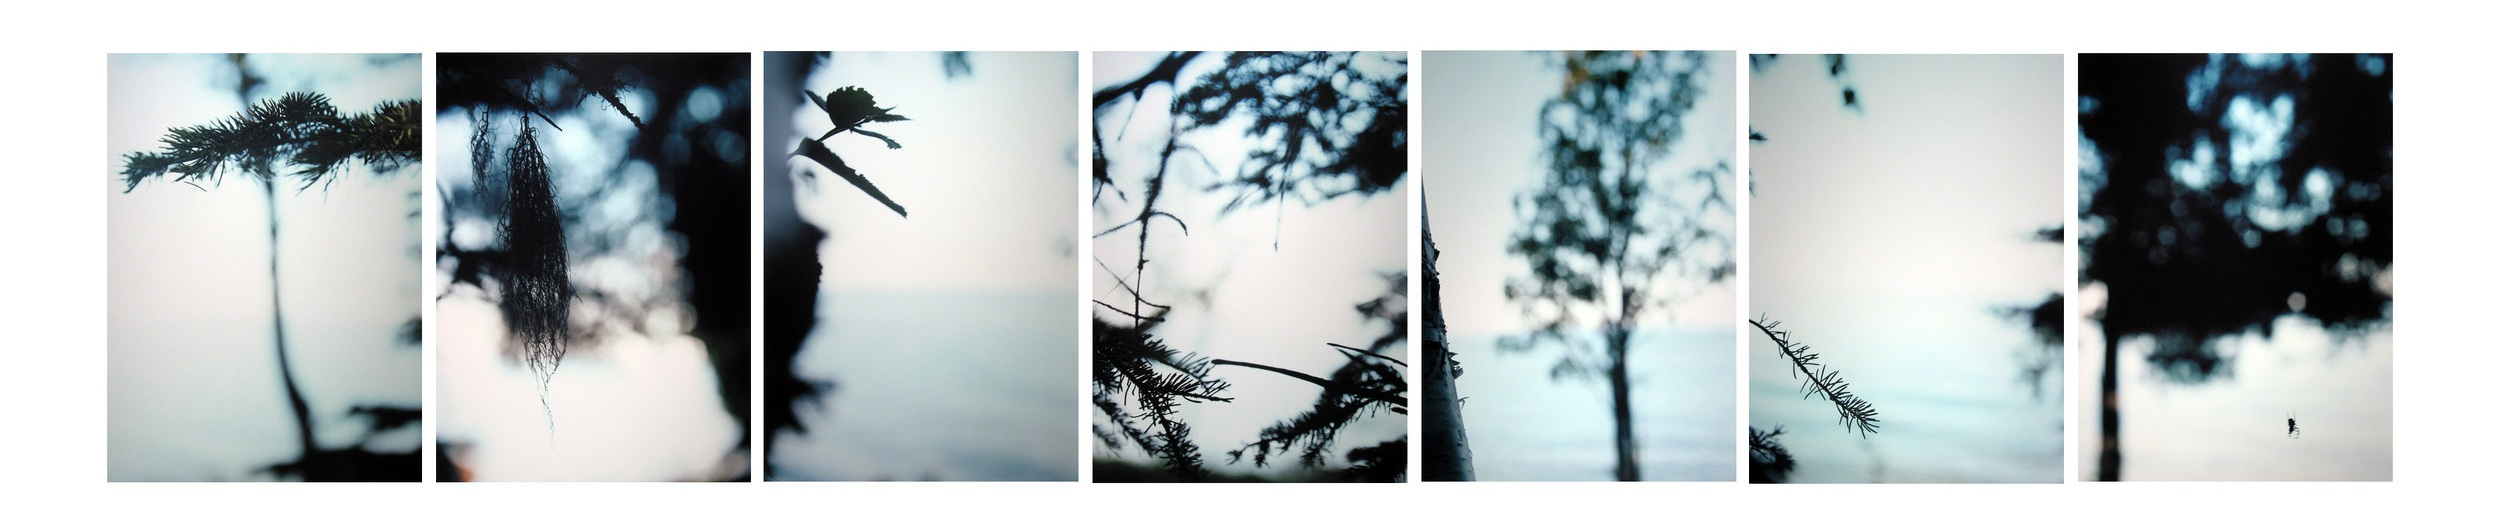 Boreal Forest/ Lake 1